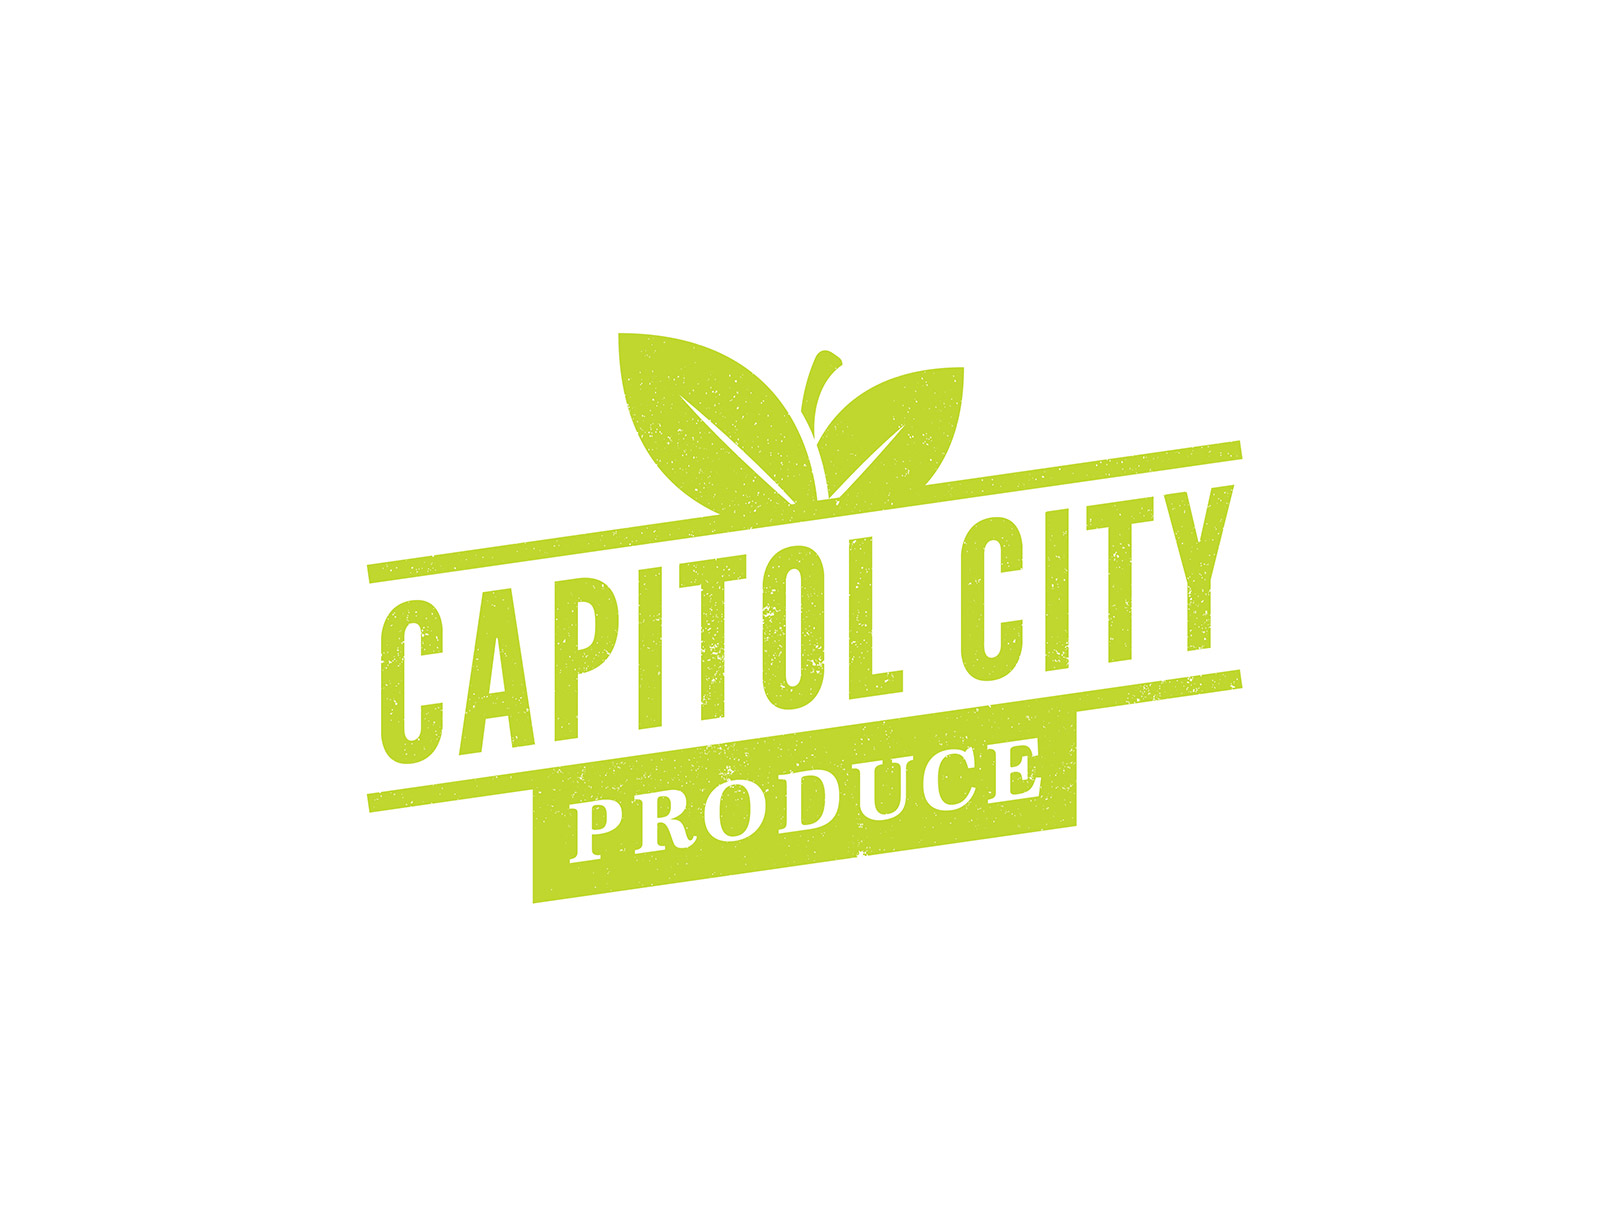 Capitol_City_Produce.jpg